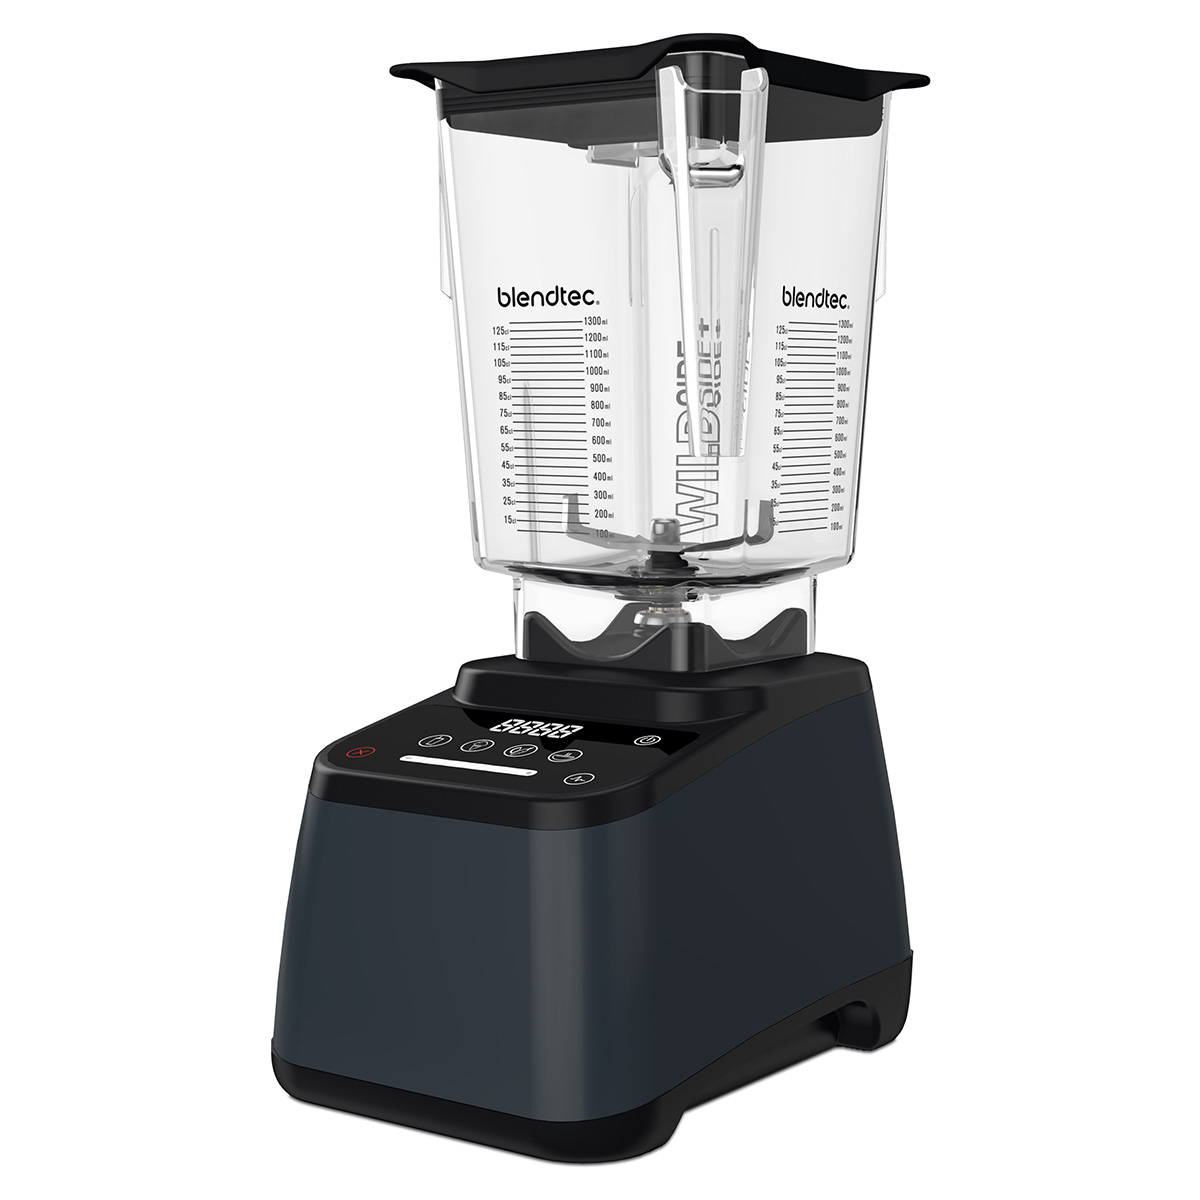 Image of   Blendtec powerblender - Designer 625 - Grå